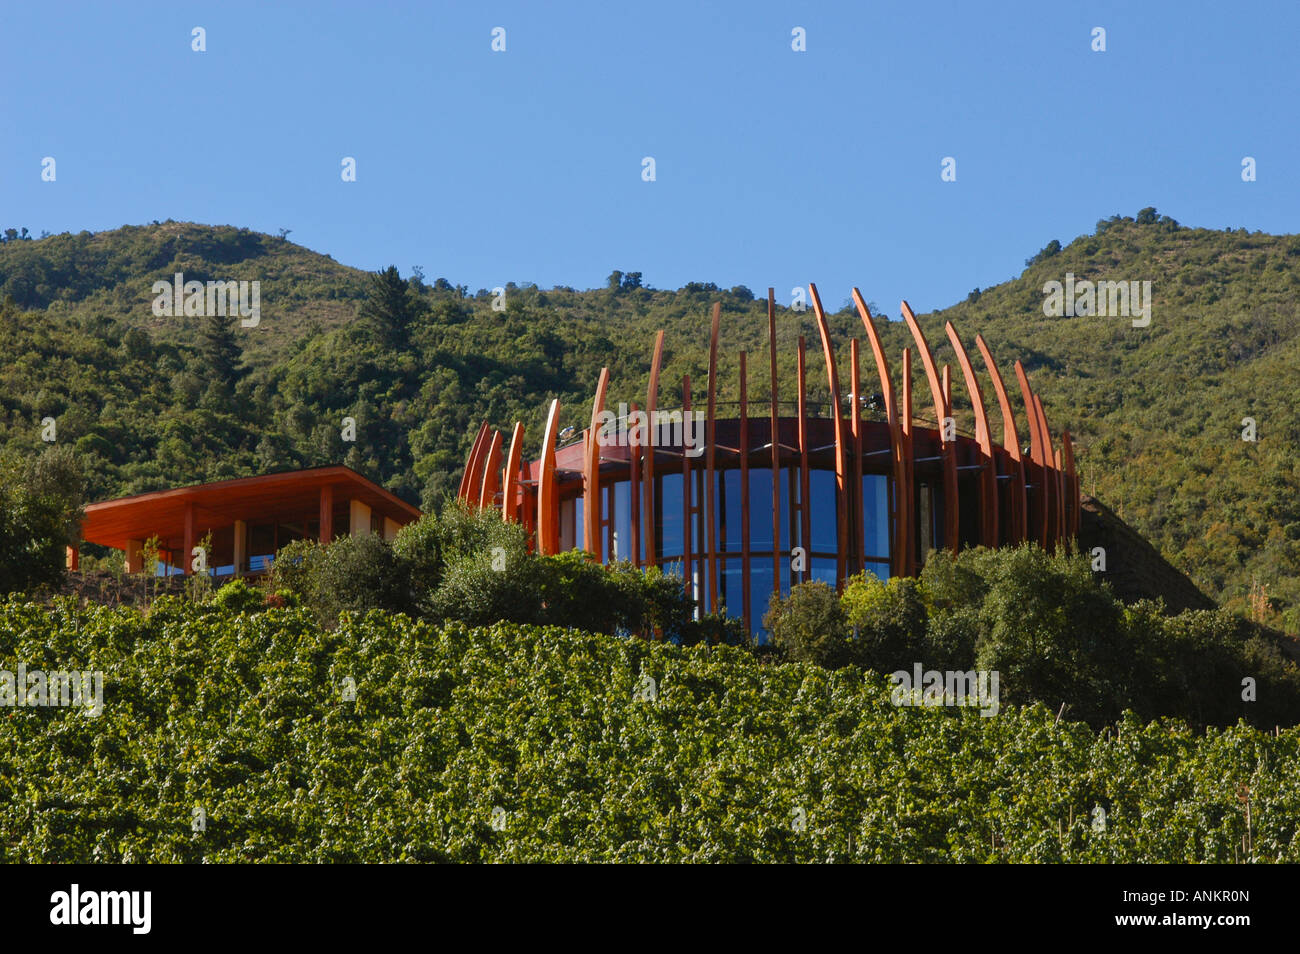 Clos apalta winery of casa lapostolle colchagua chile for Casa lapostolle